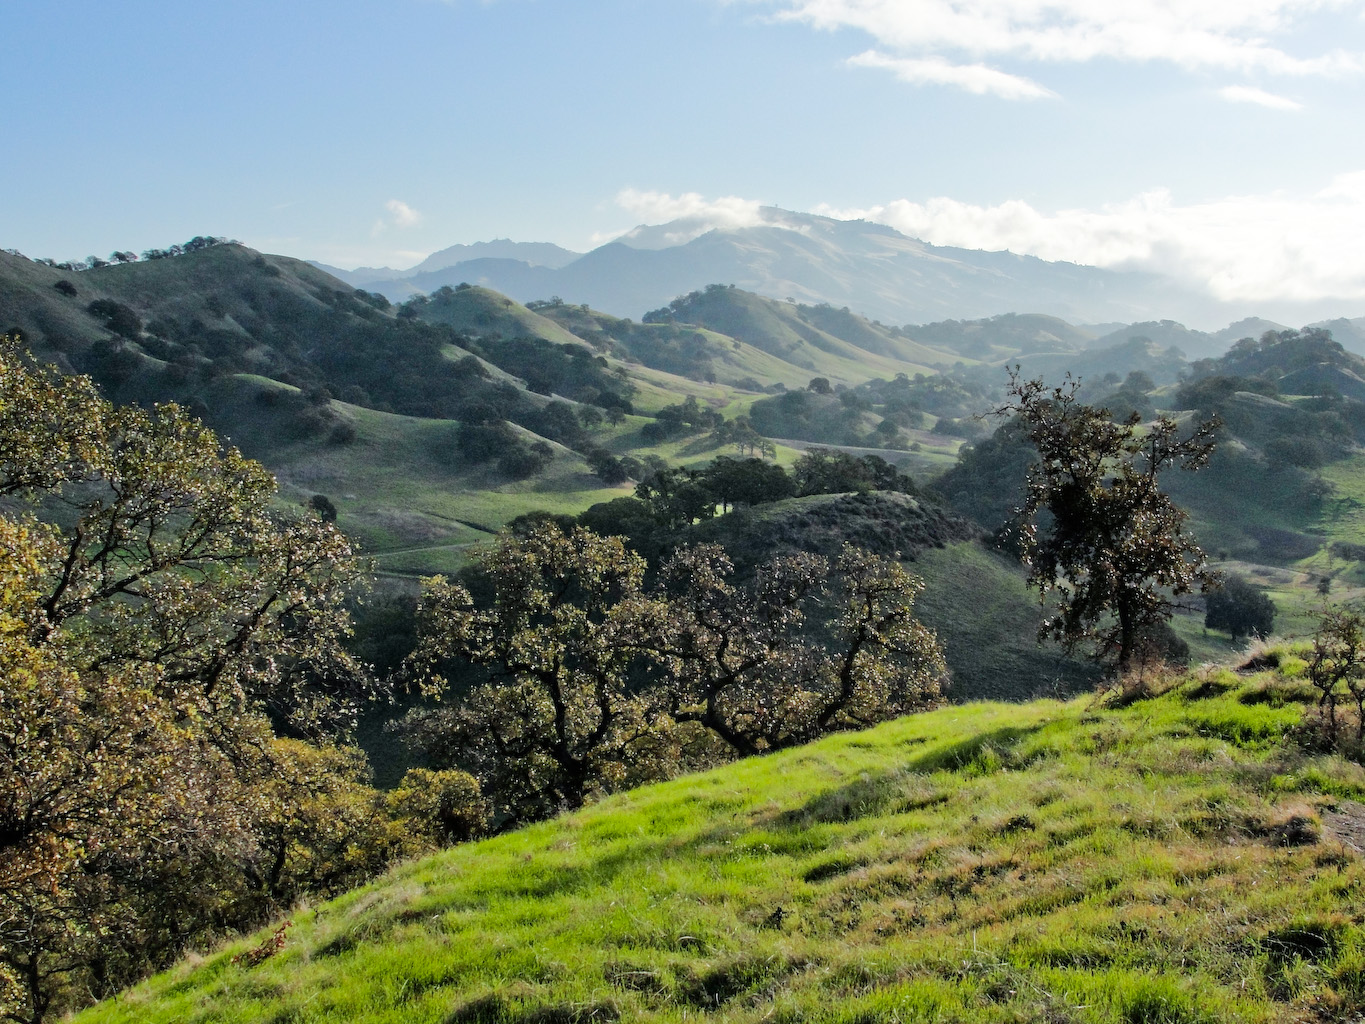 Mount_Diablo_from_Quarry_Hill_in_Shell_Ridge_Open_Space